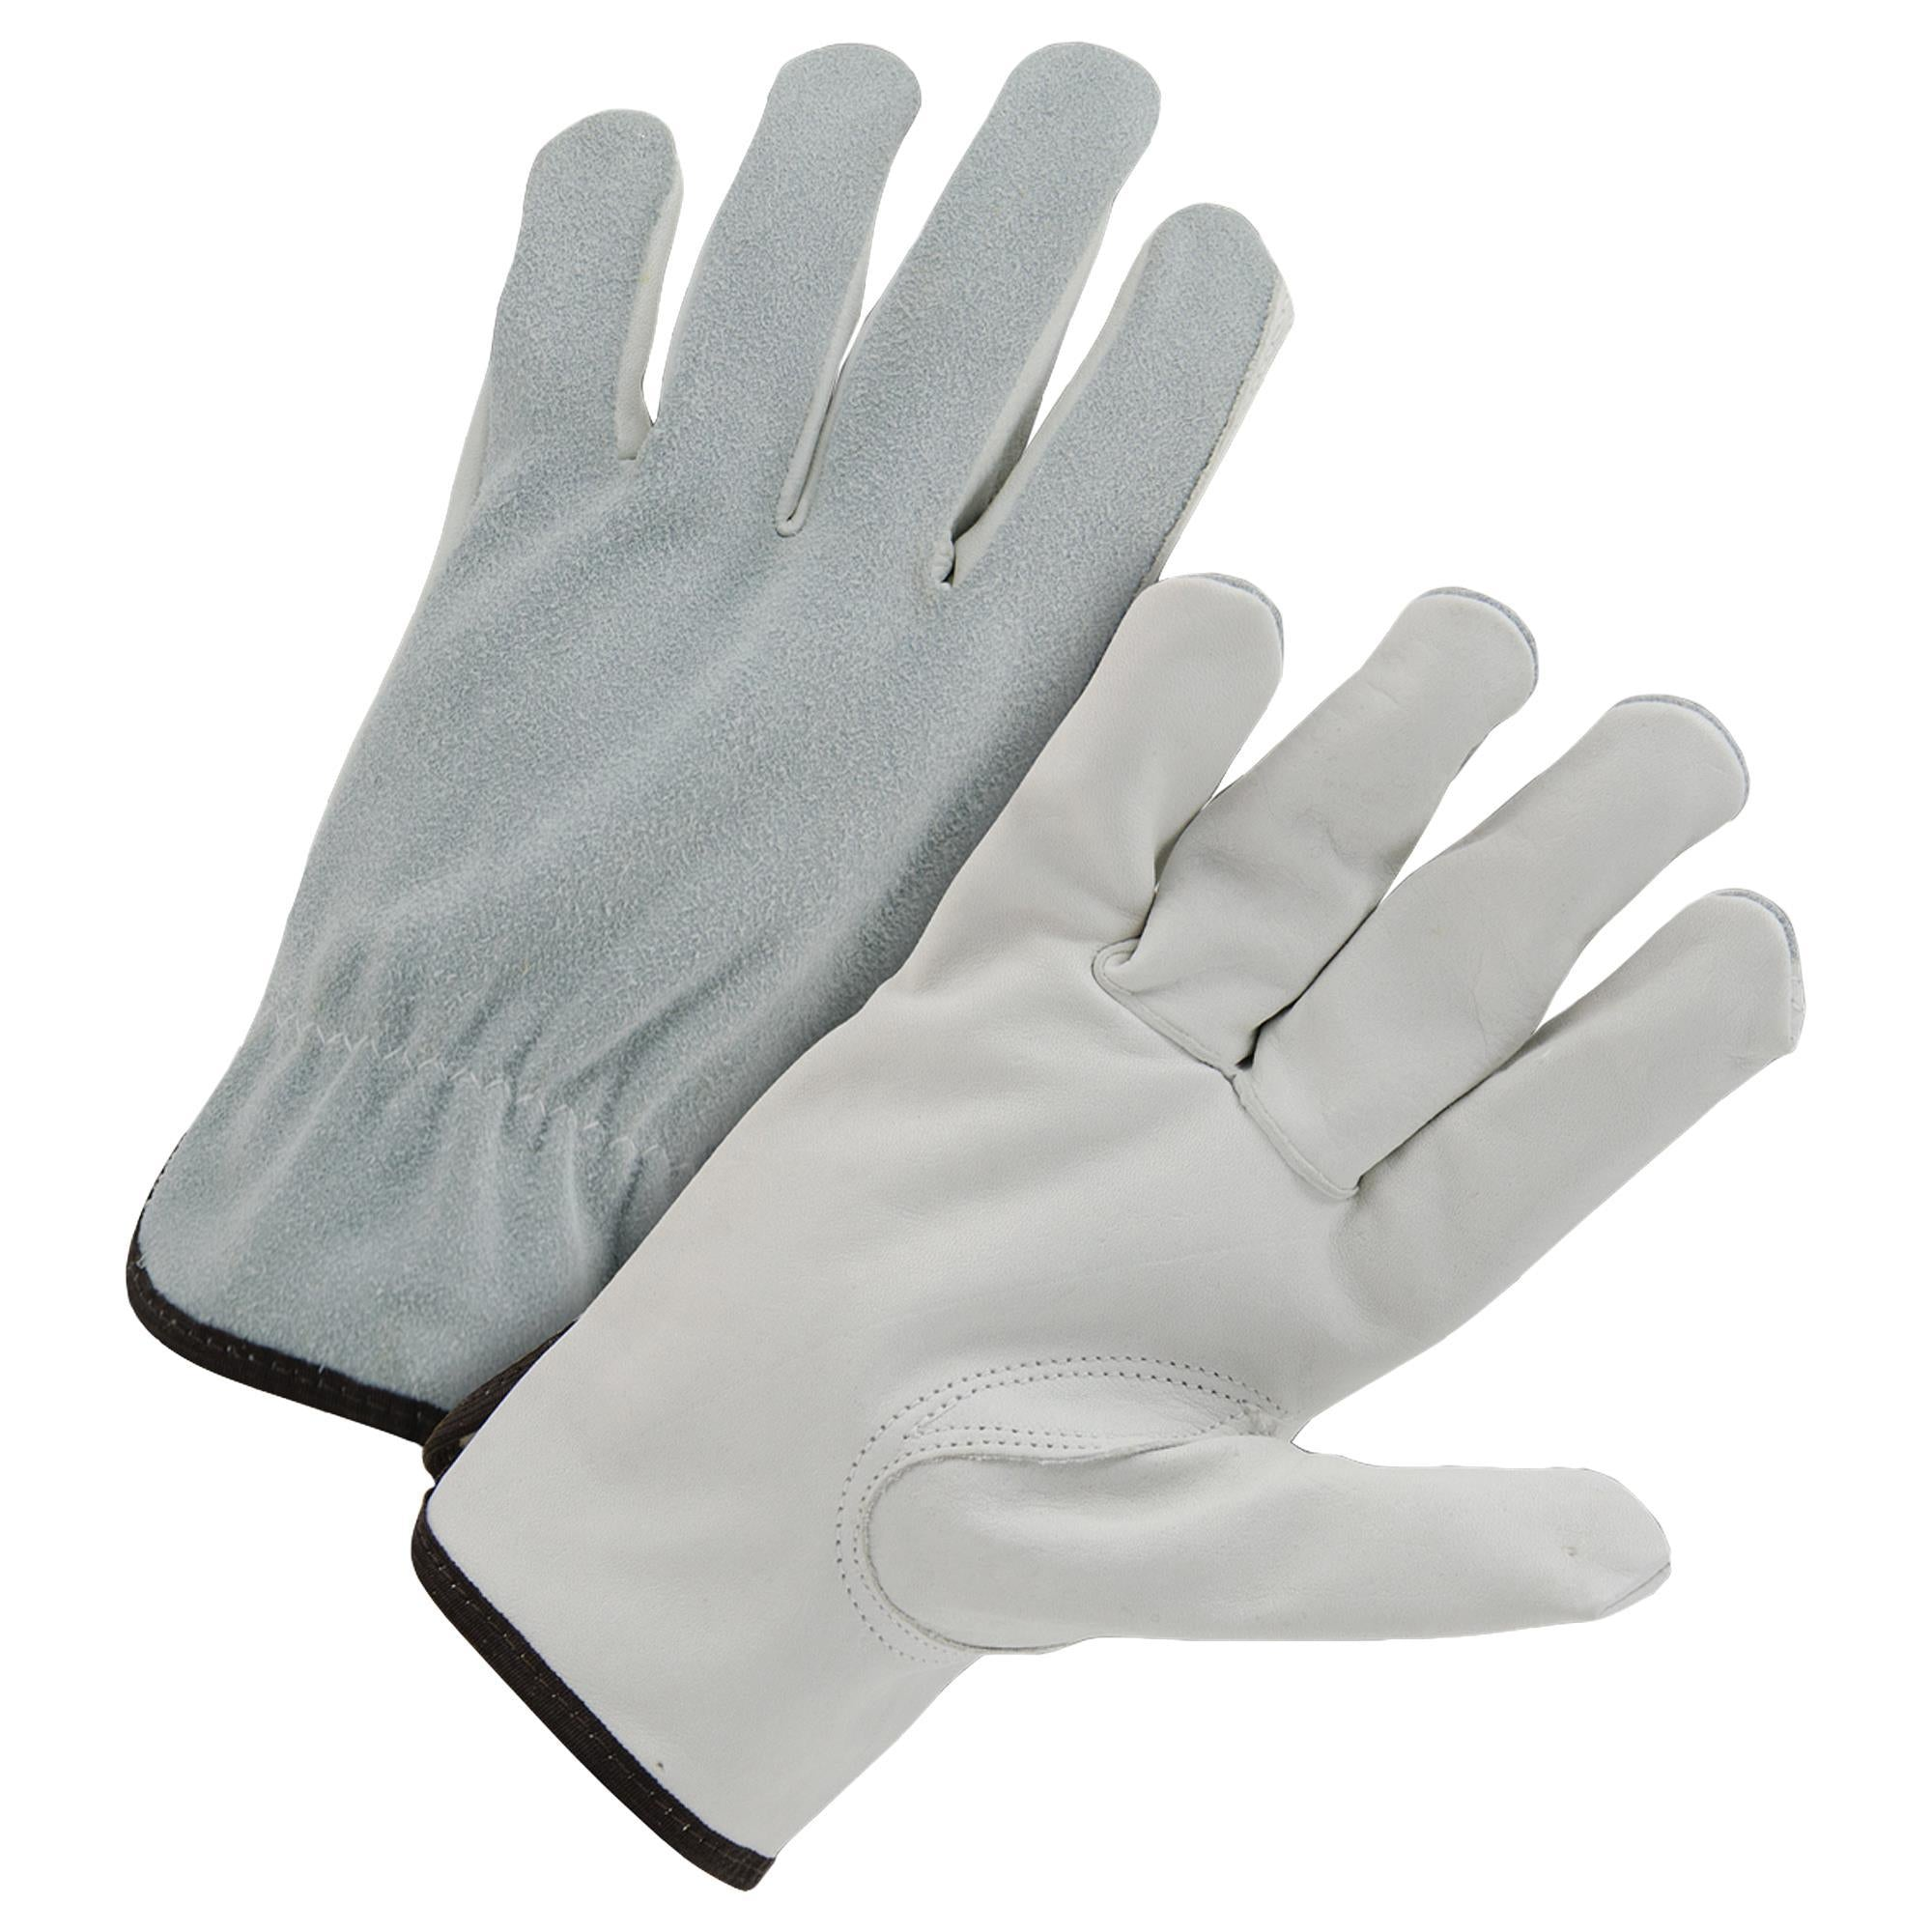 D300 Premium Leather Driving Gloves 1pair